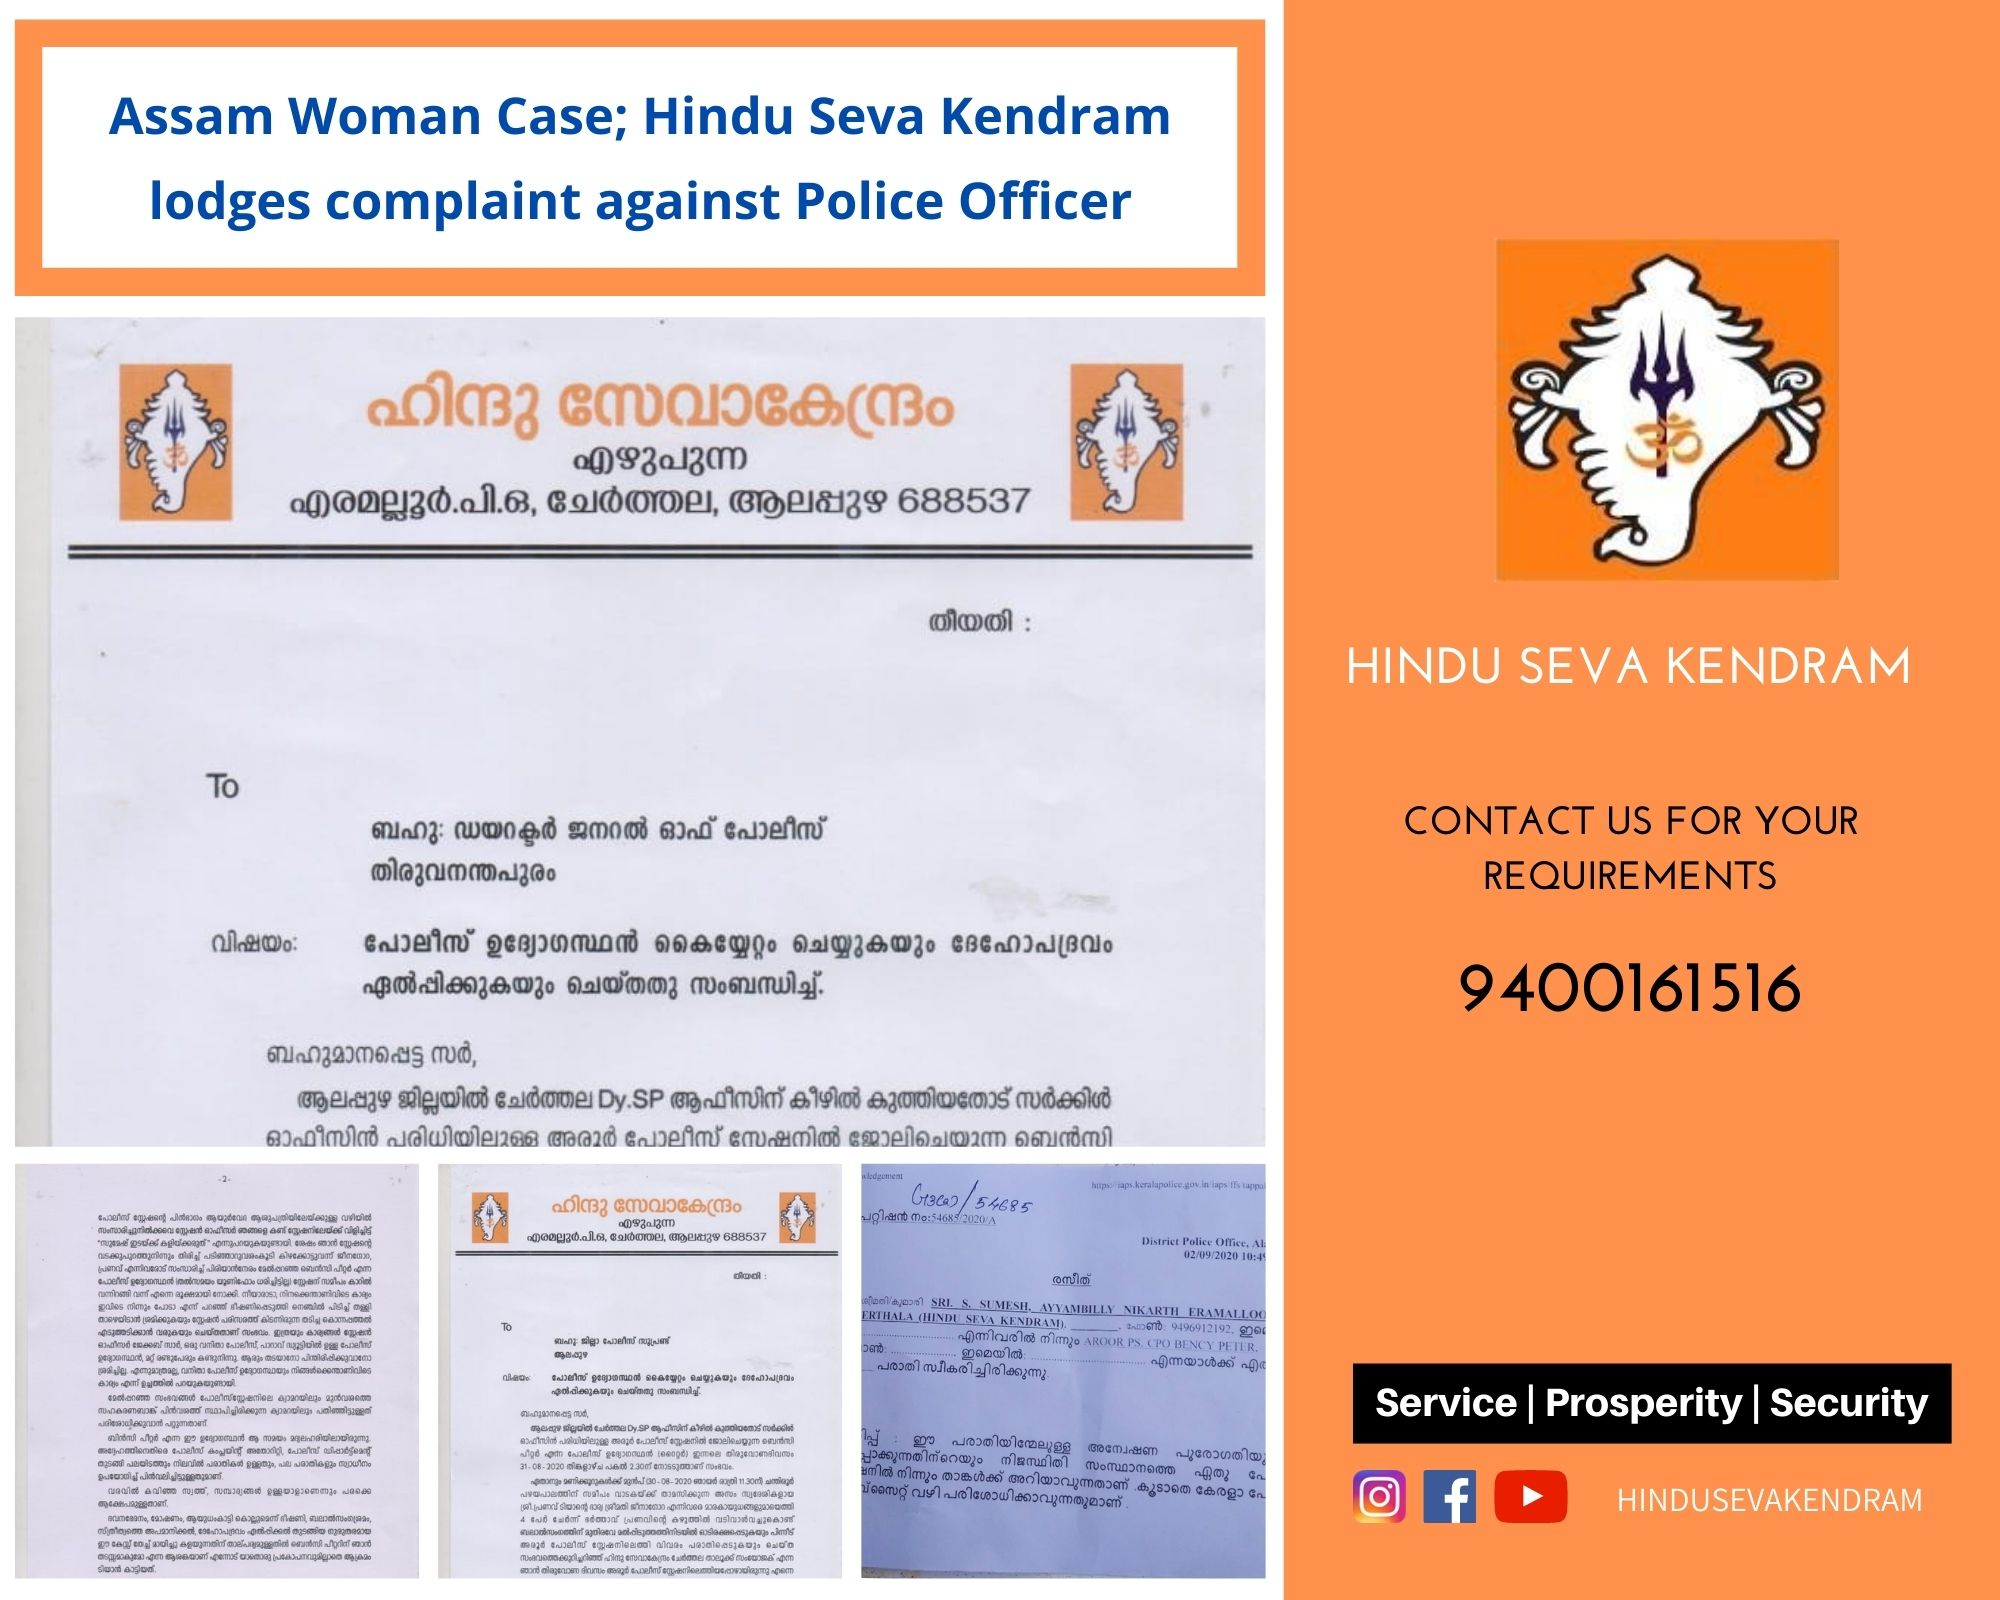 Assam Woman Case; Hindu Seva Kendram lodges complaint against Police Officer